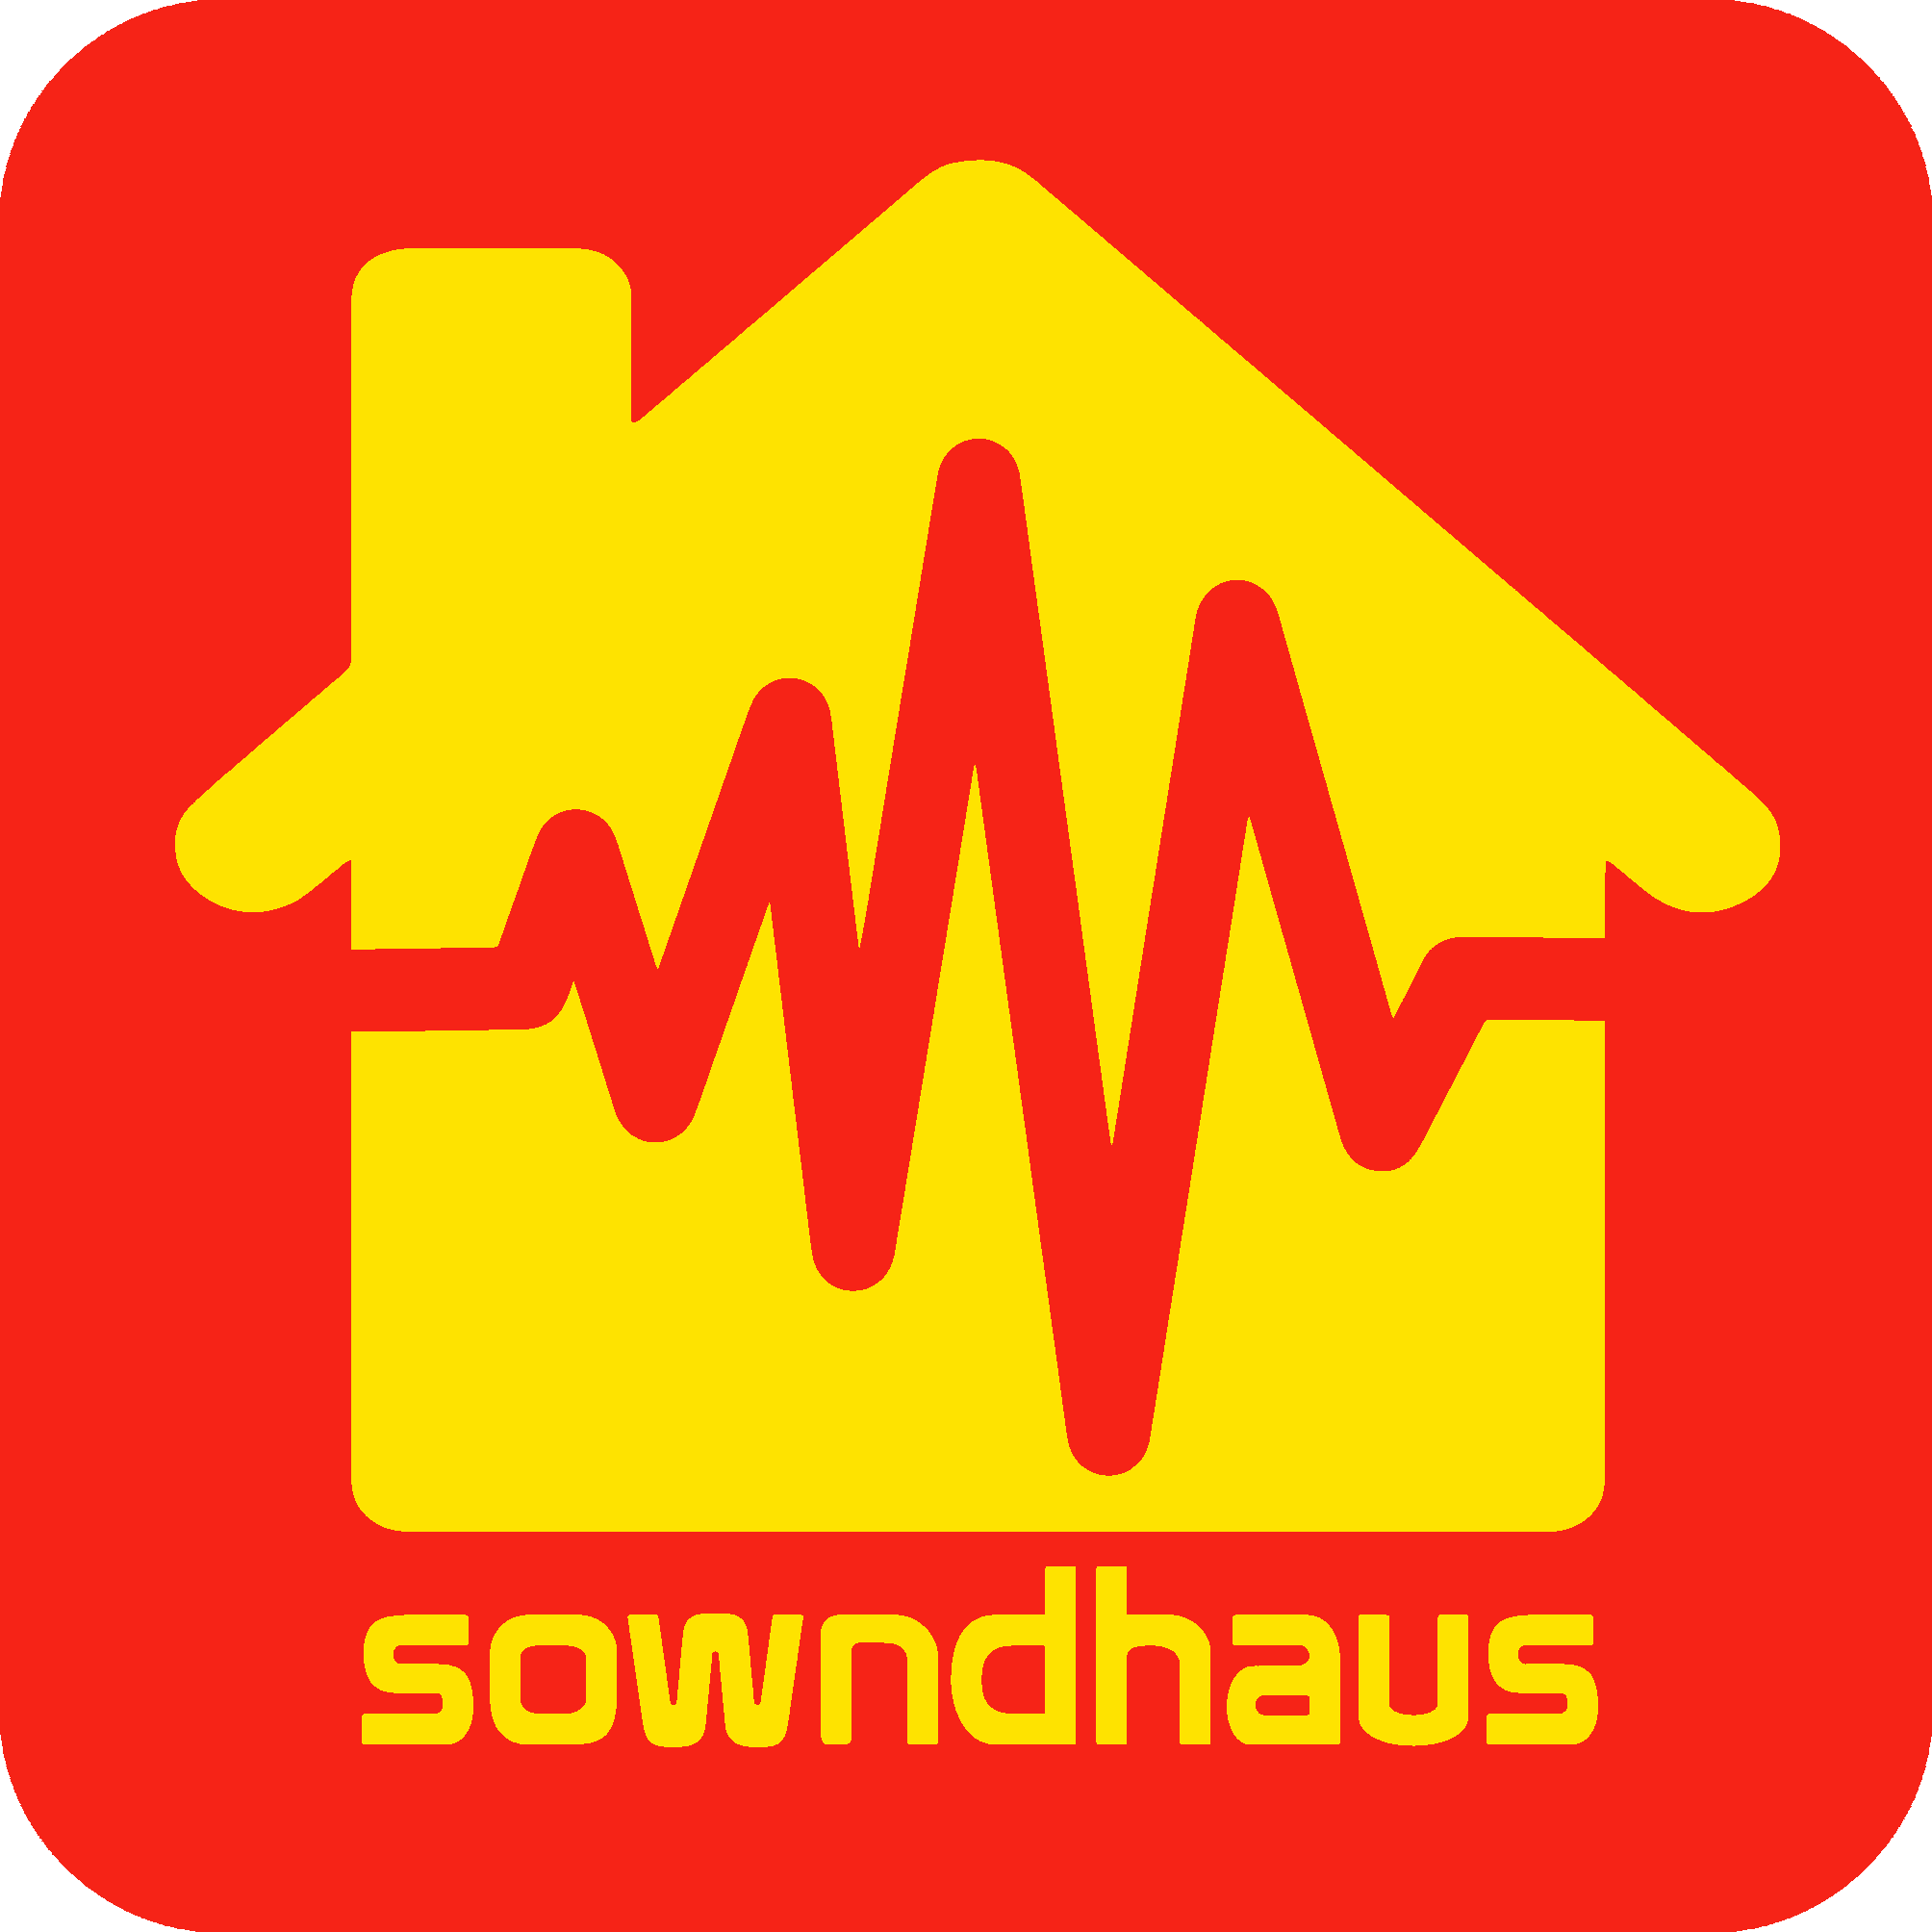 Follow Us on SowndHaus